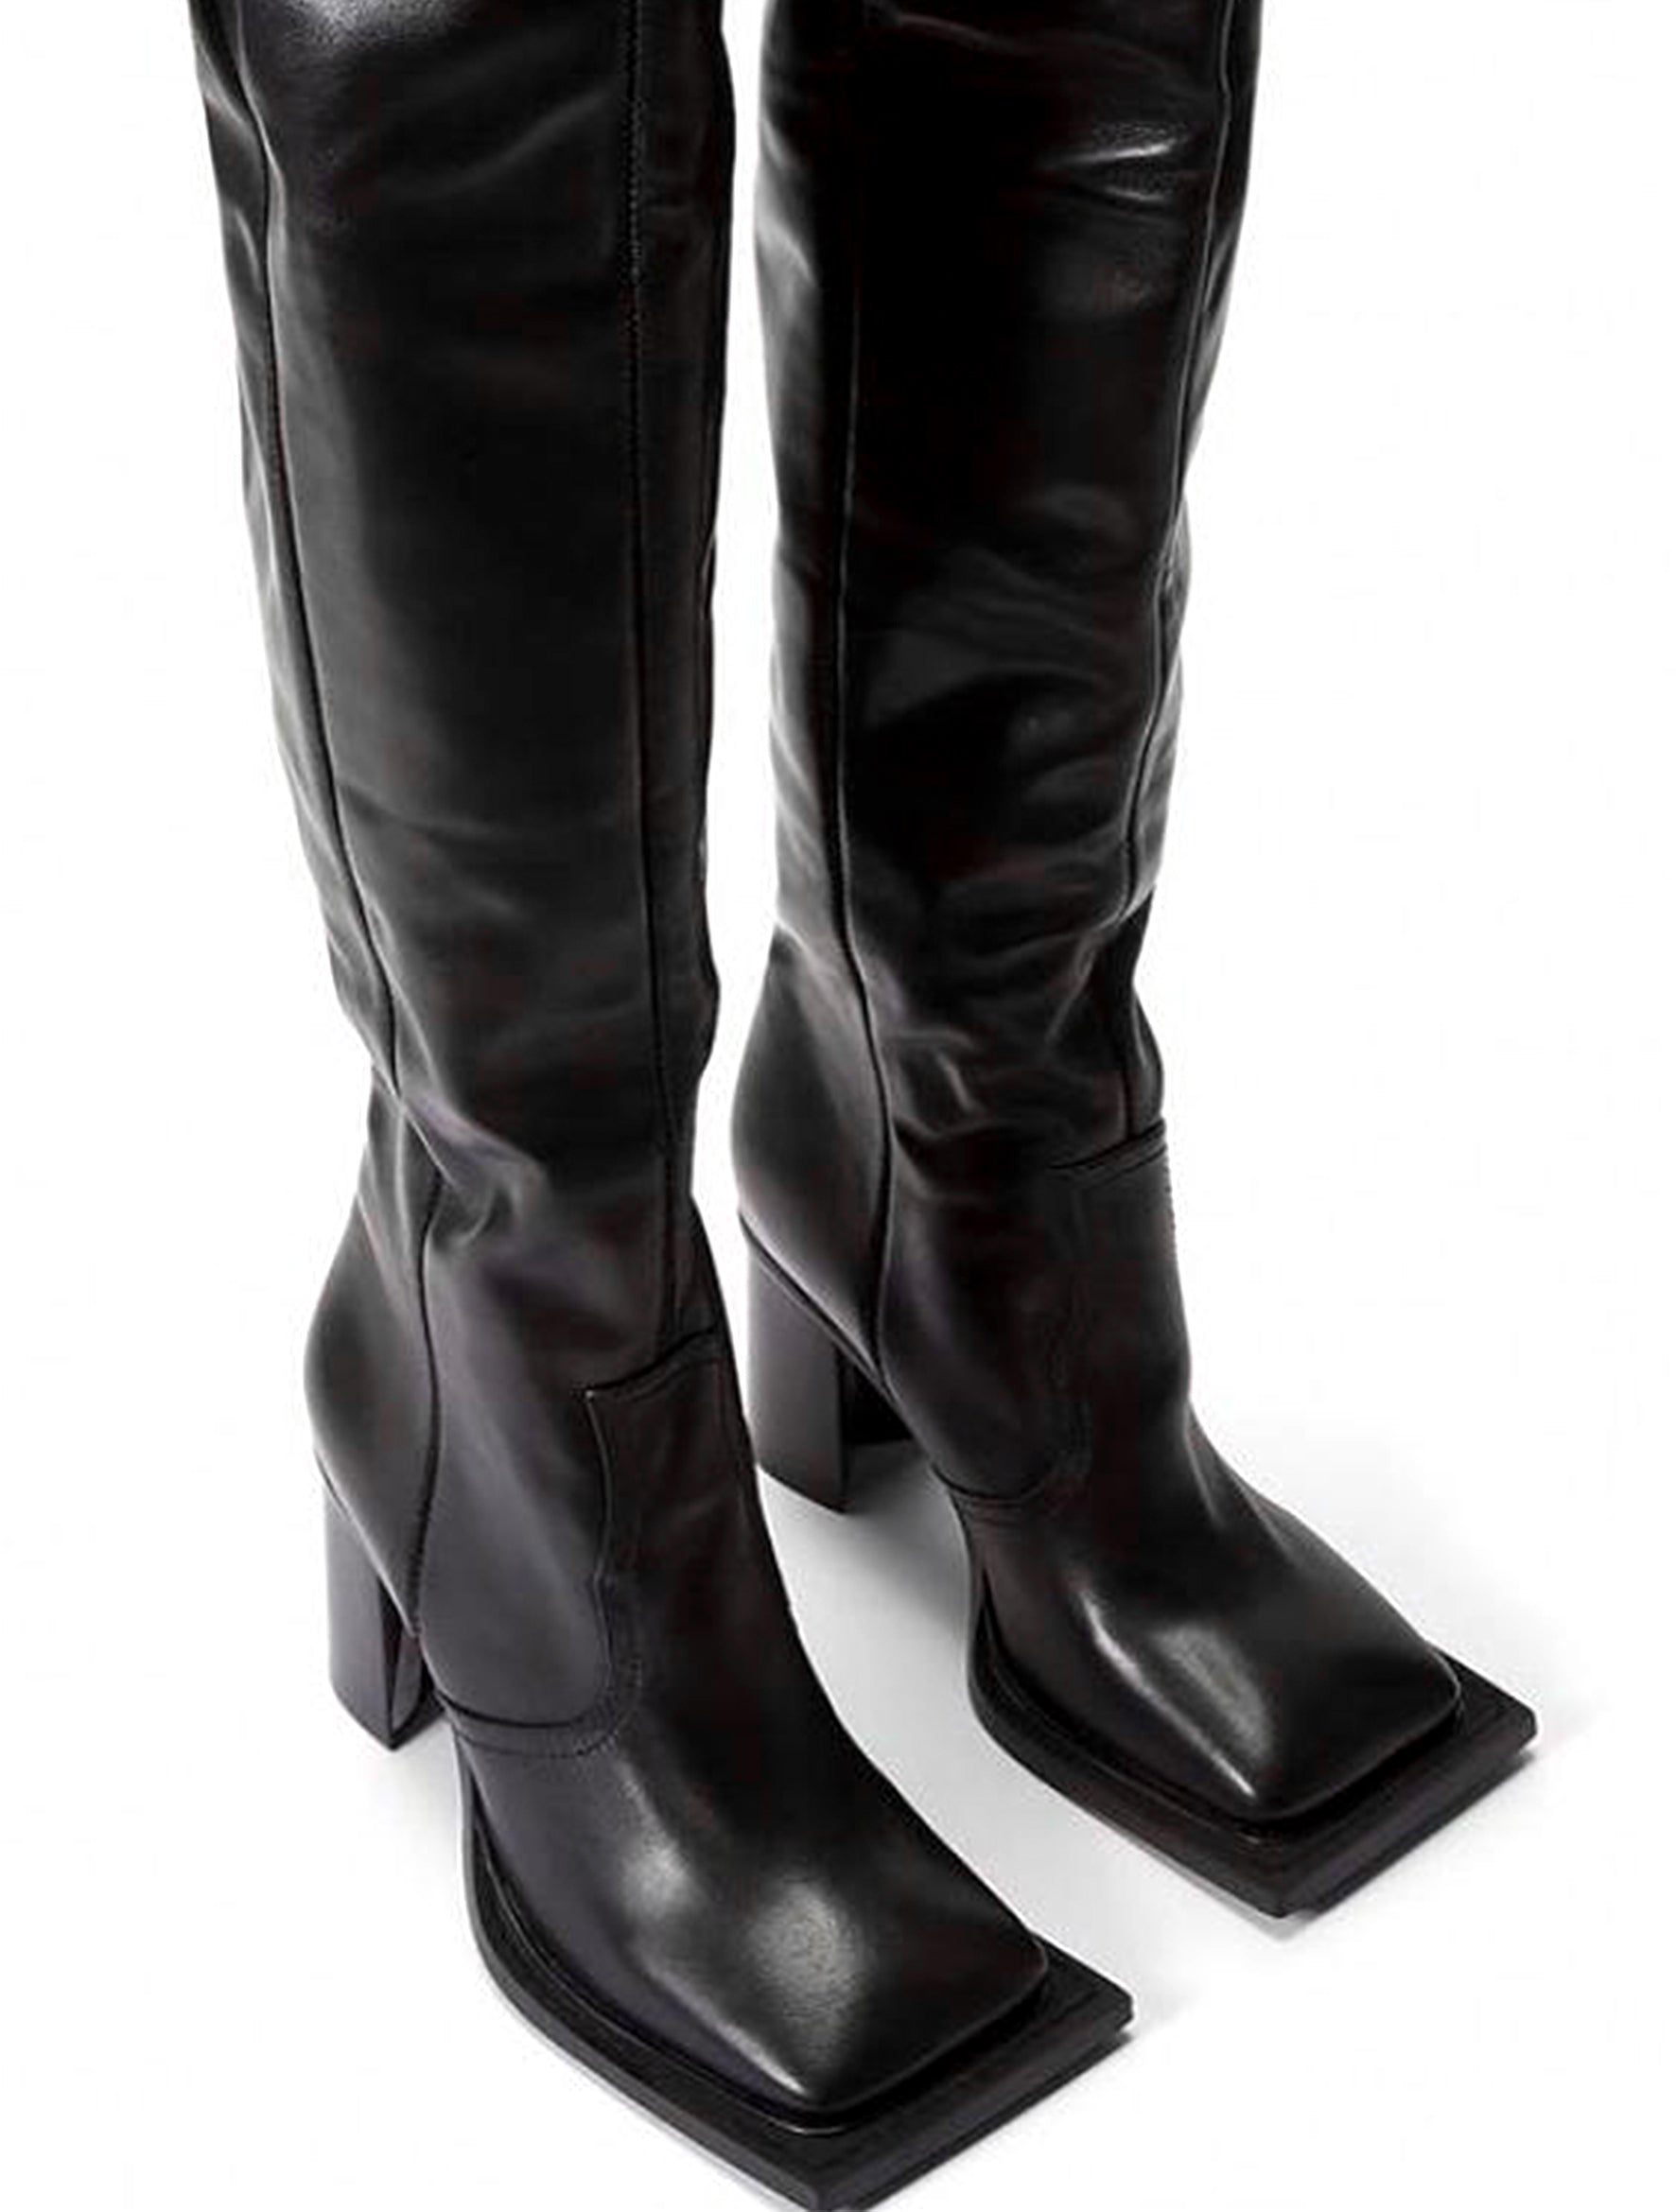 Ninamounah Howling Knee High Boot